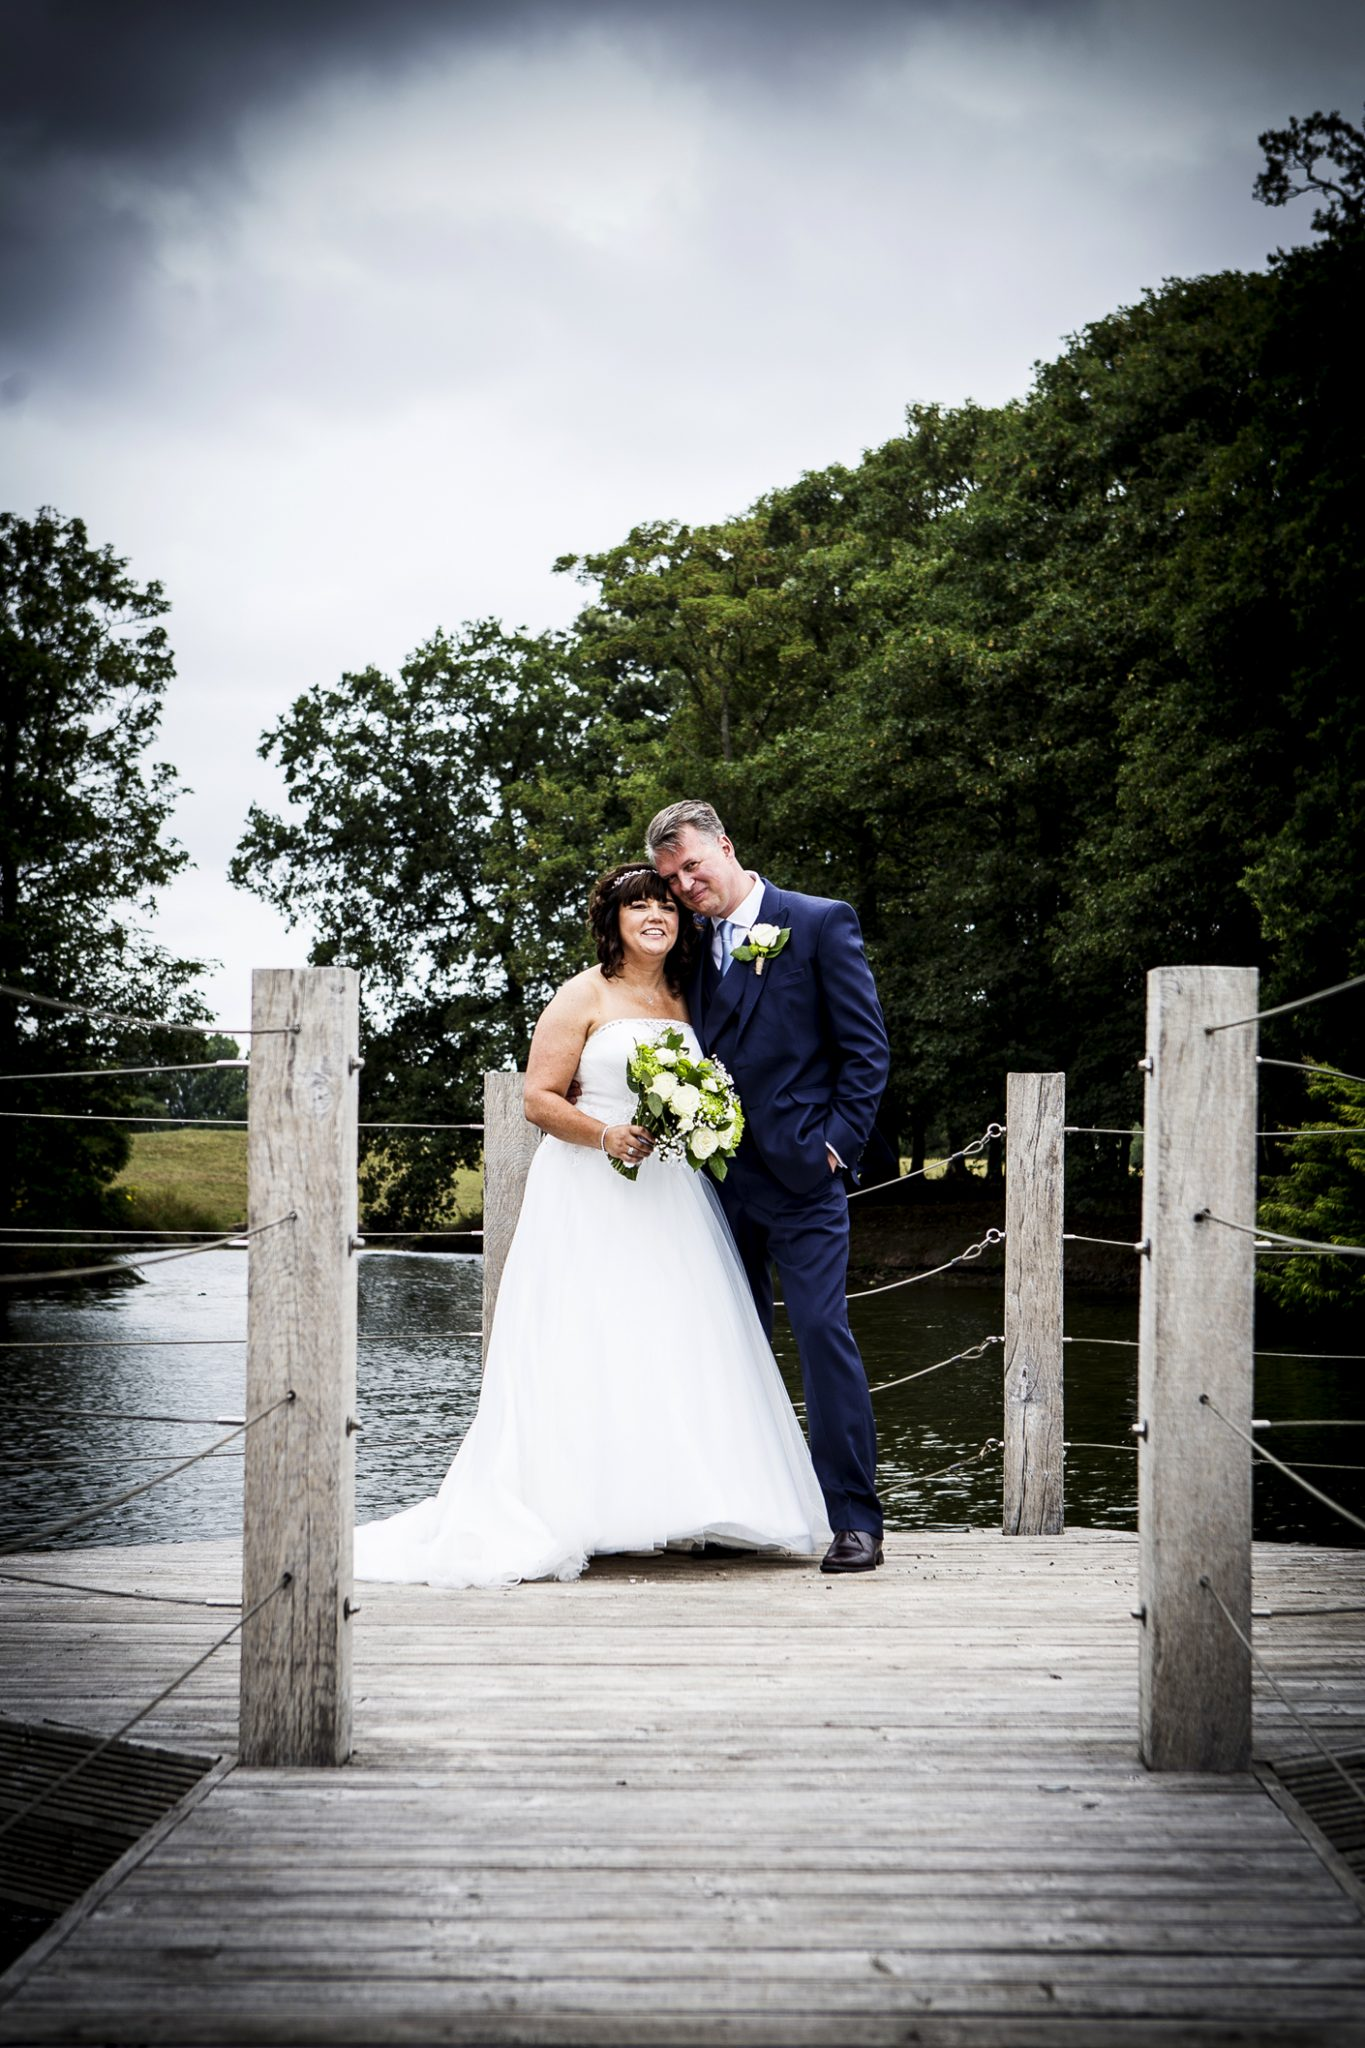 wedding-photography-in-the-grounds-of-merrydale-manor-knutsford-cheshire